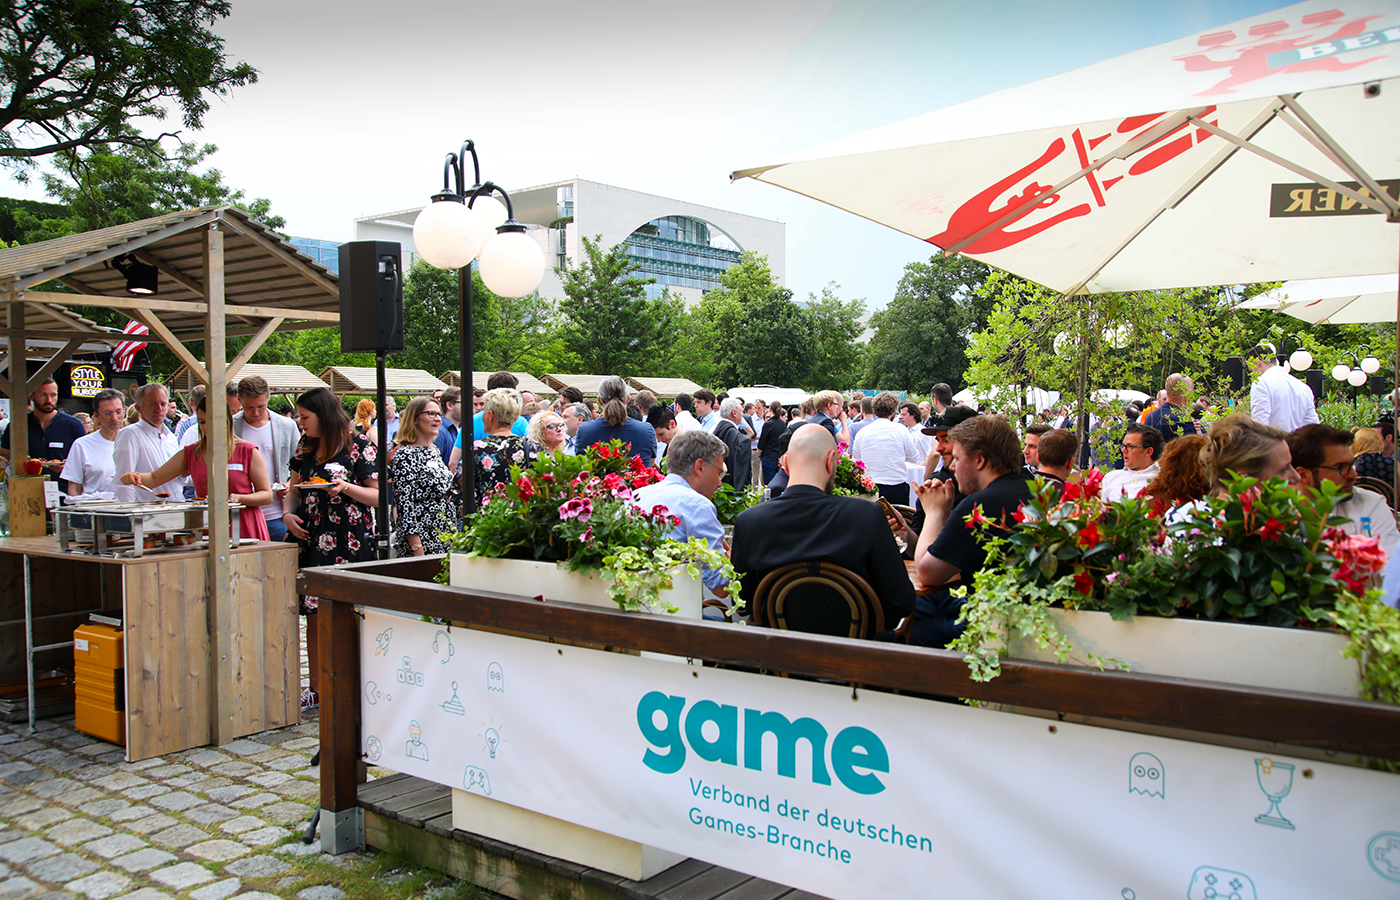 game Sommerfest 2019 – Berlin